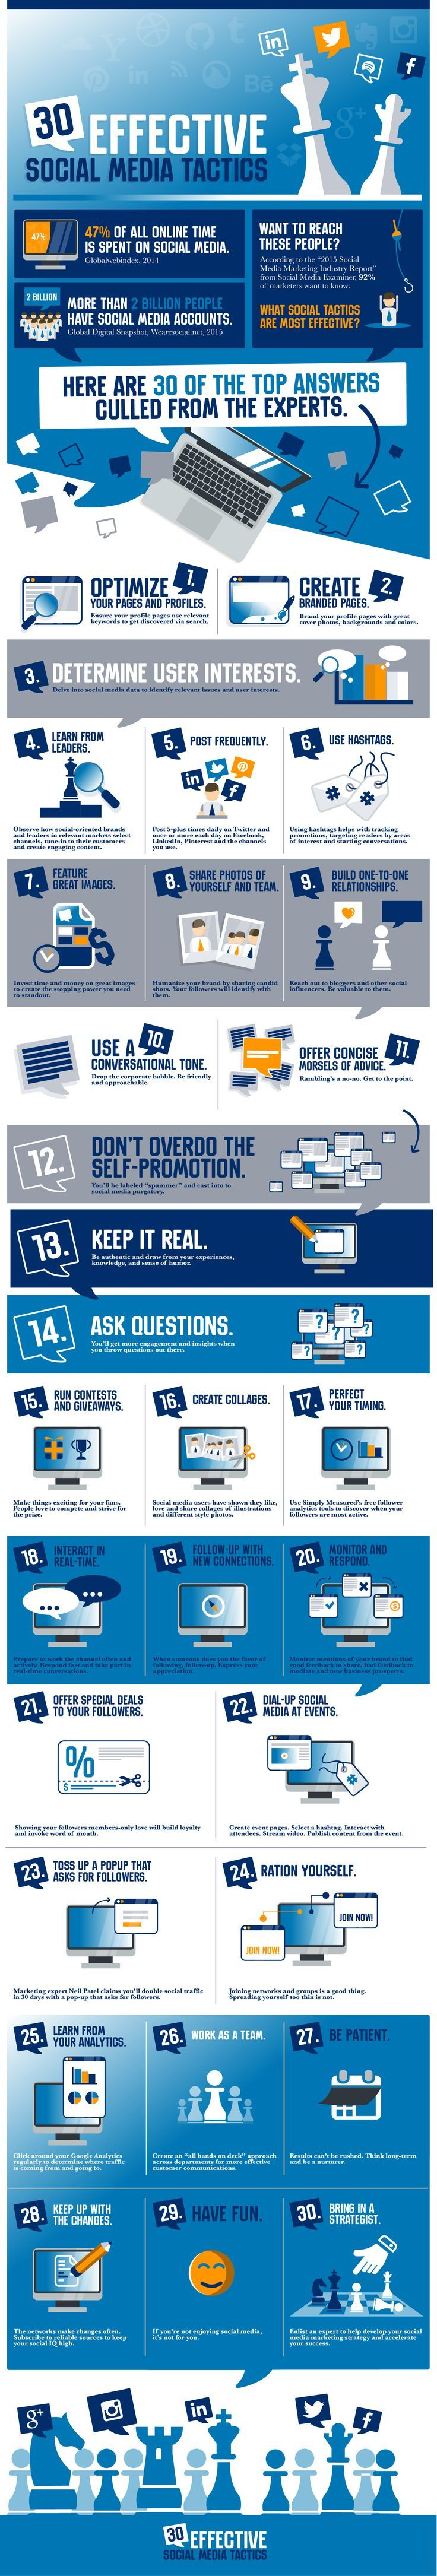 30 Killer Tips to Become a Master Social Media Manager [Infographic] - @B2C